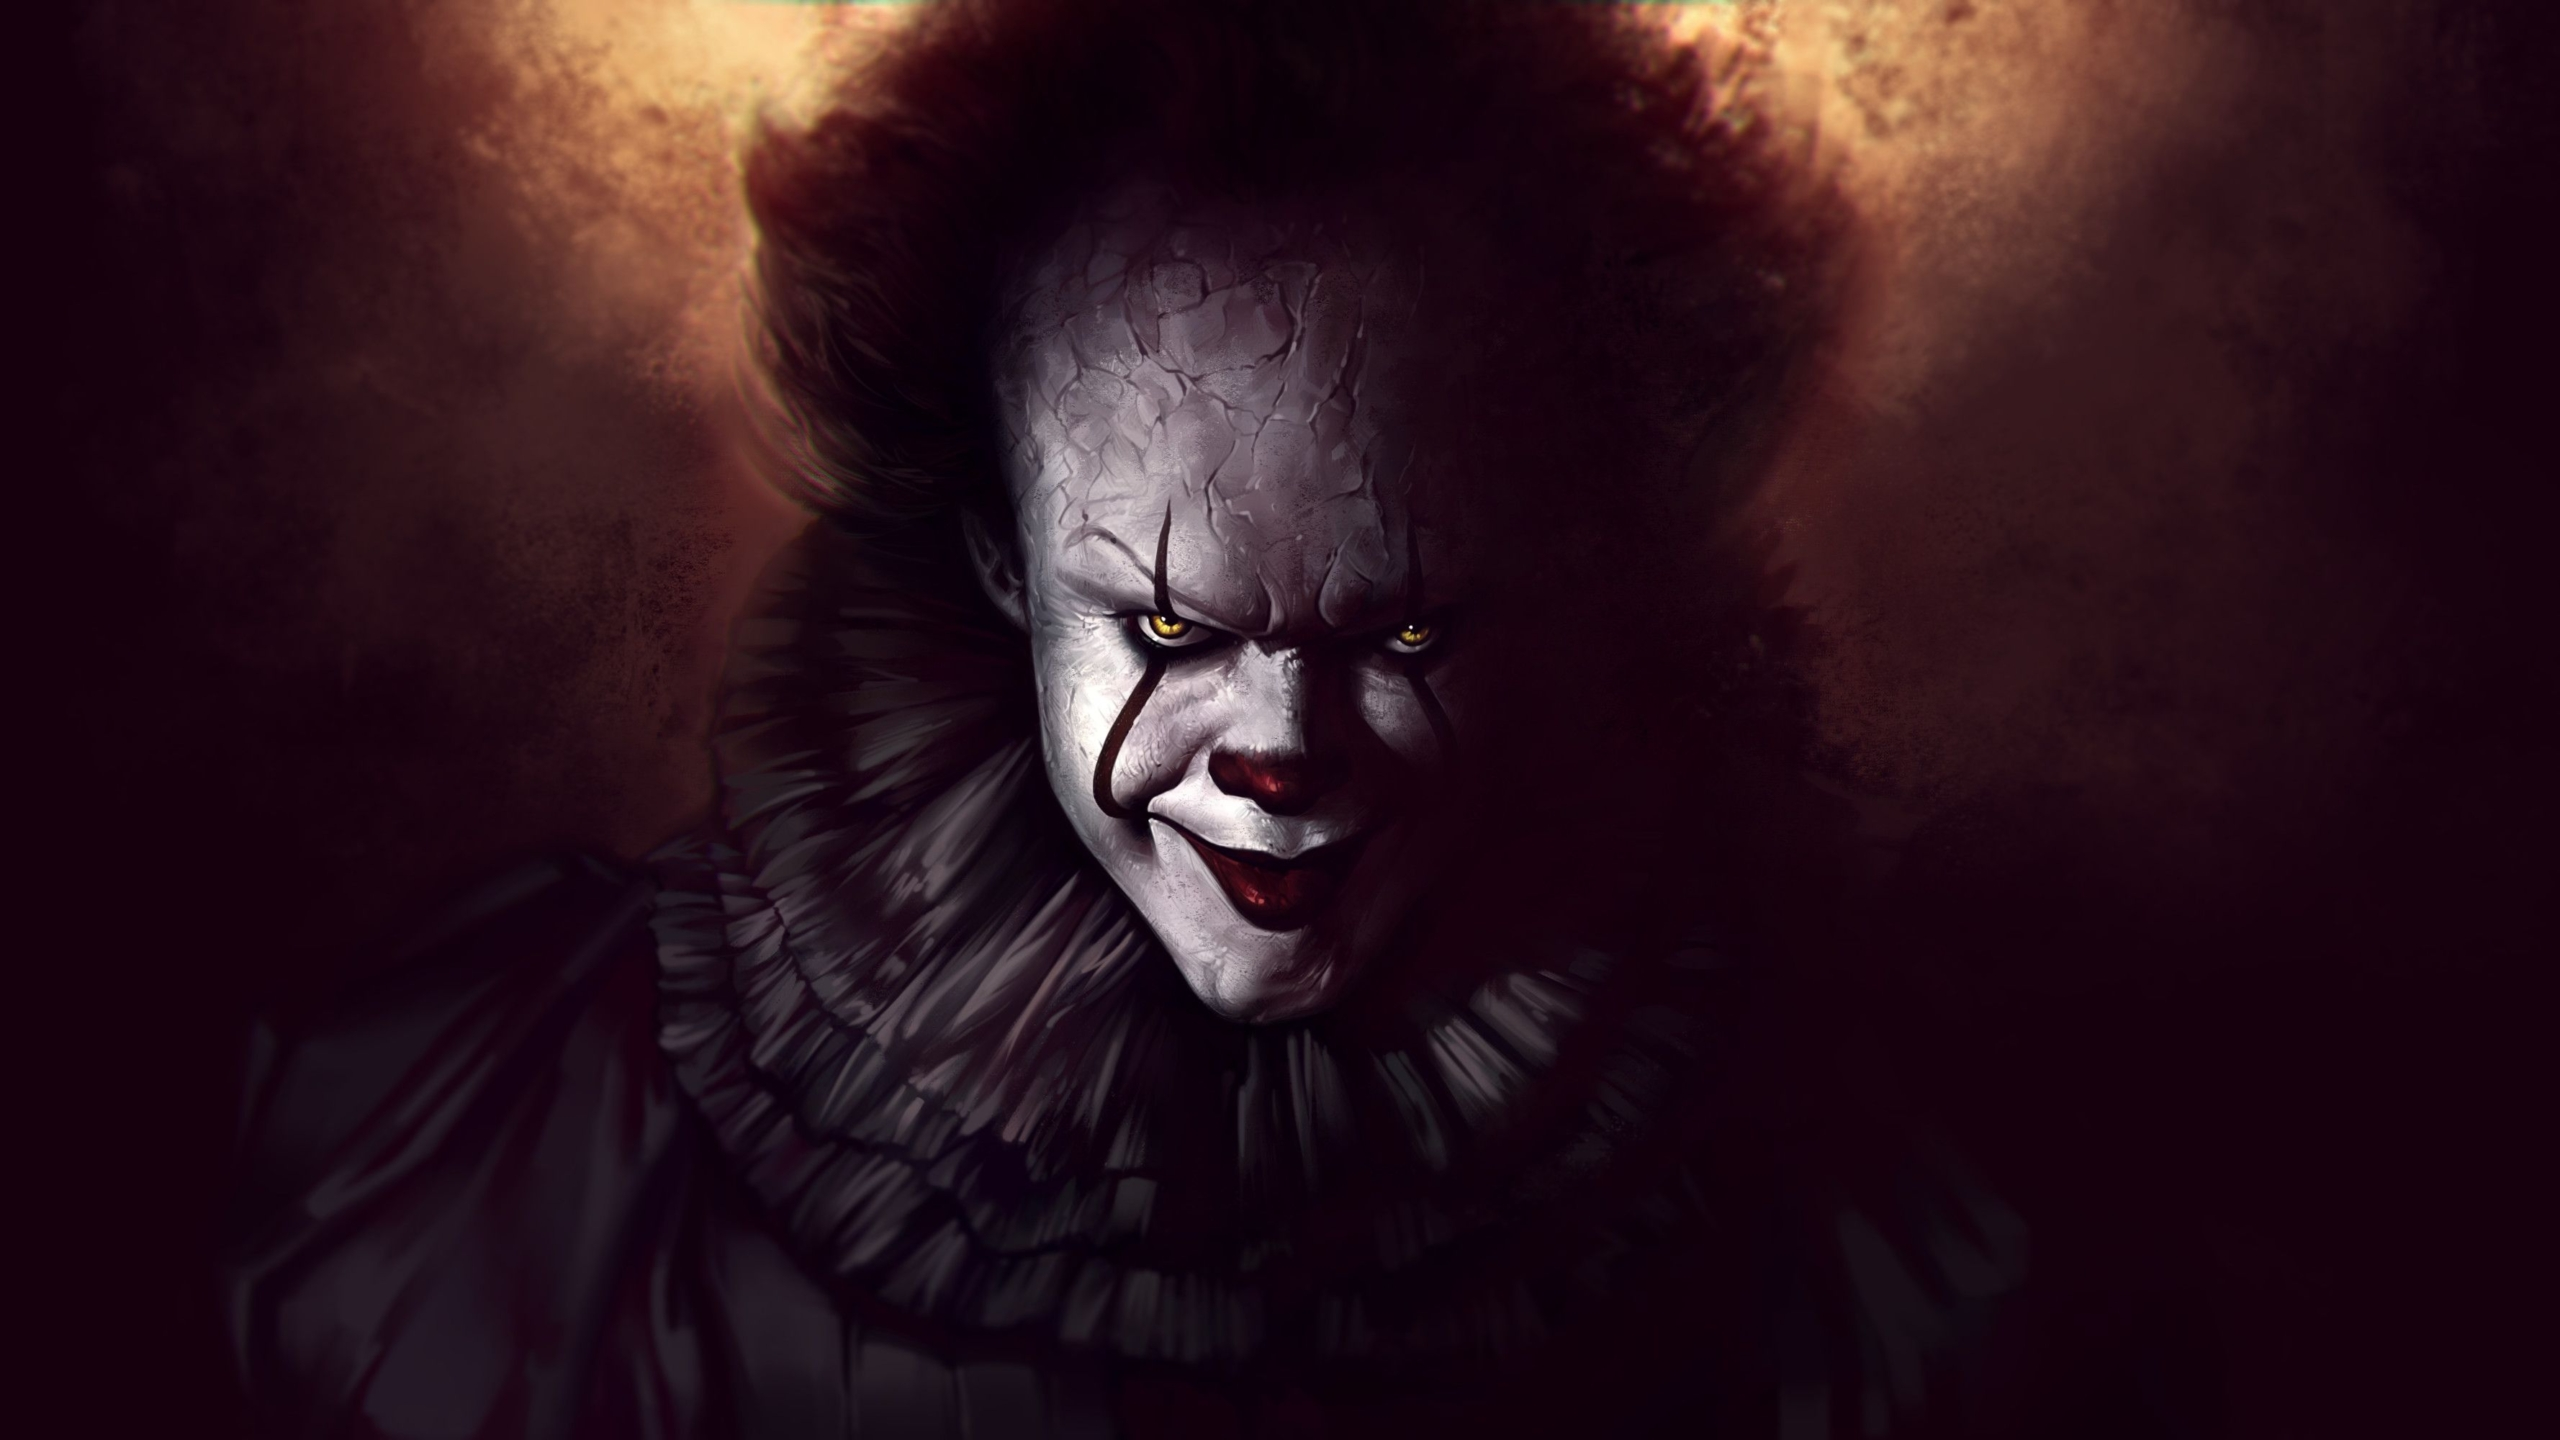 Pennywise the Clown – The Wallpaper You Have Been Looking For